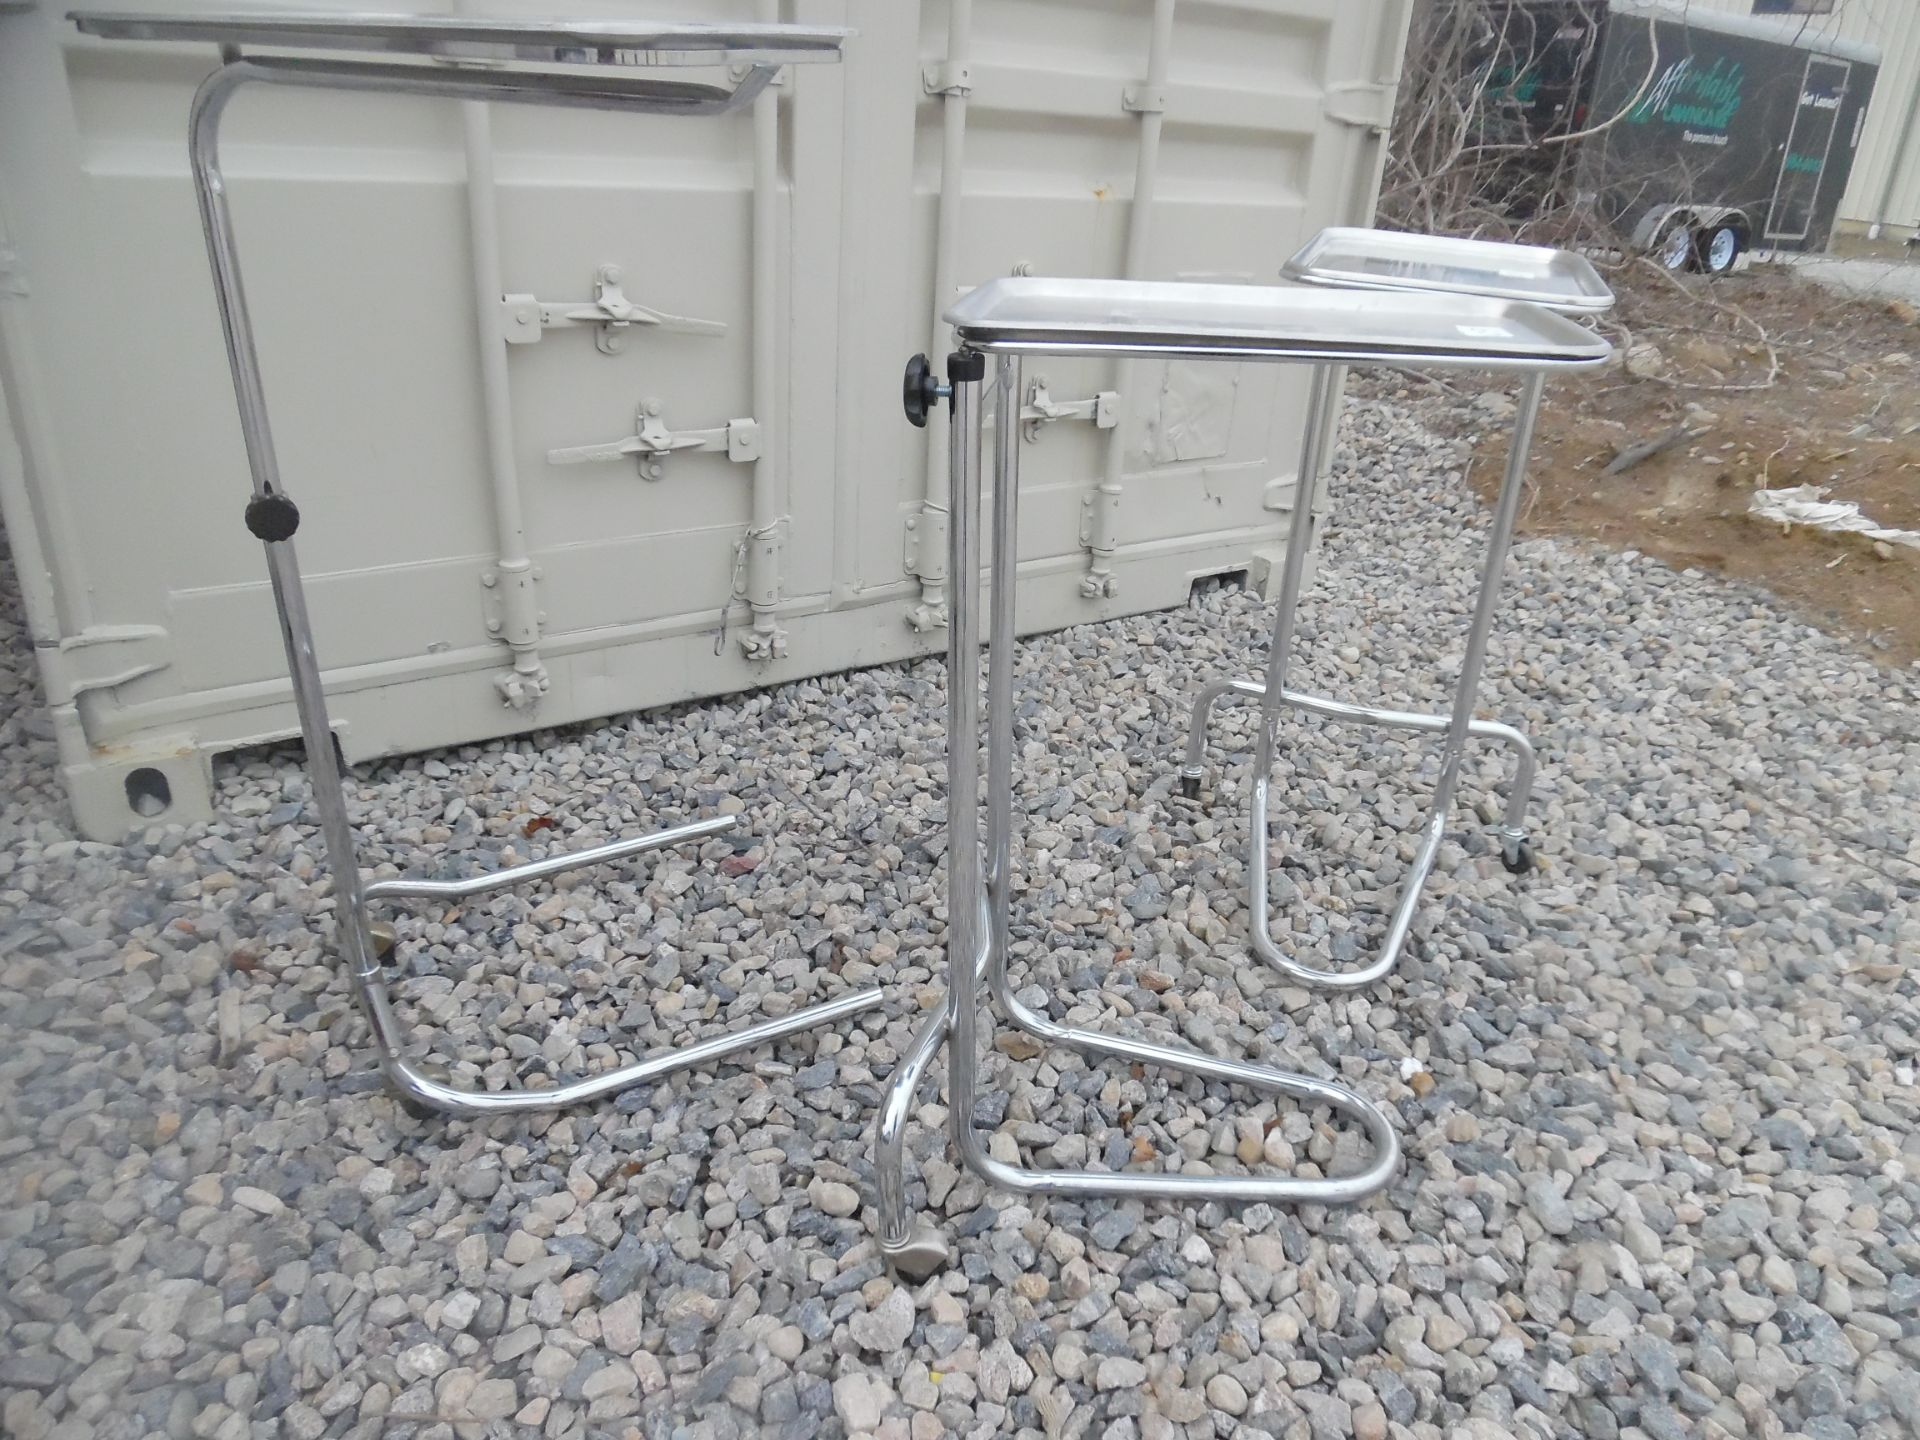 Lot of 3 Medical/surgical stands with trays. - Image 3 of 4